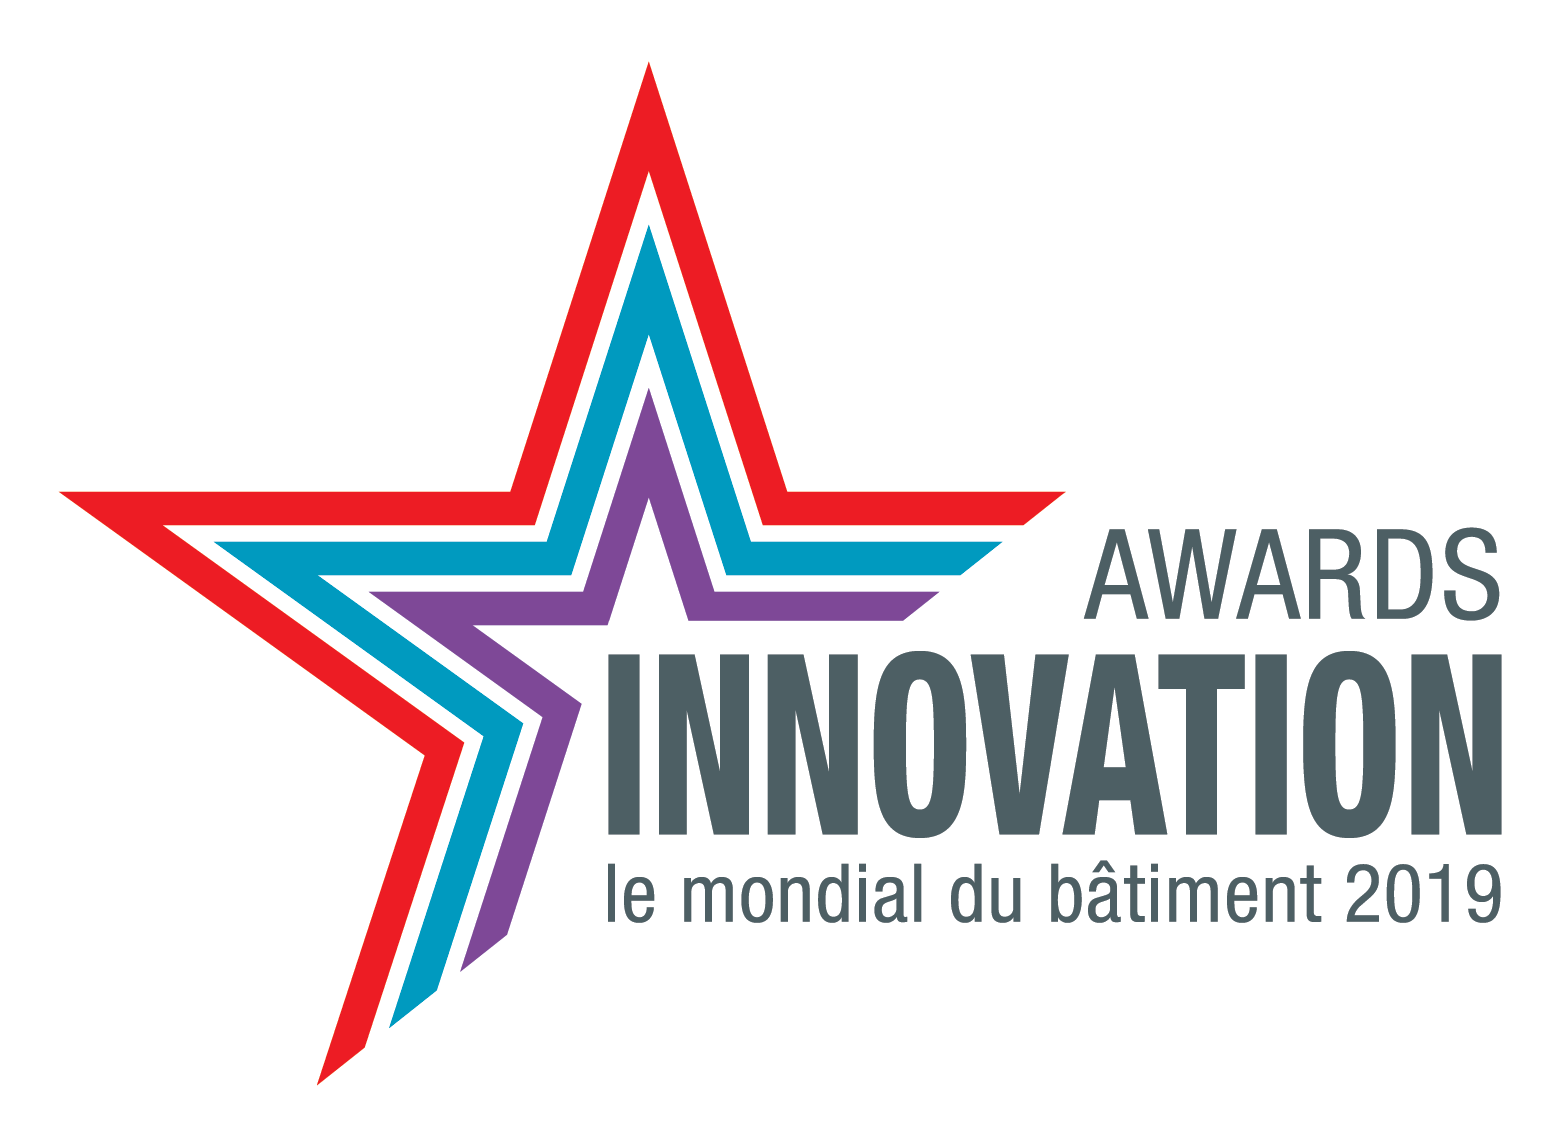 Awards Innovation 2019